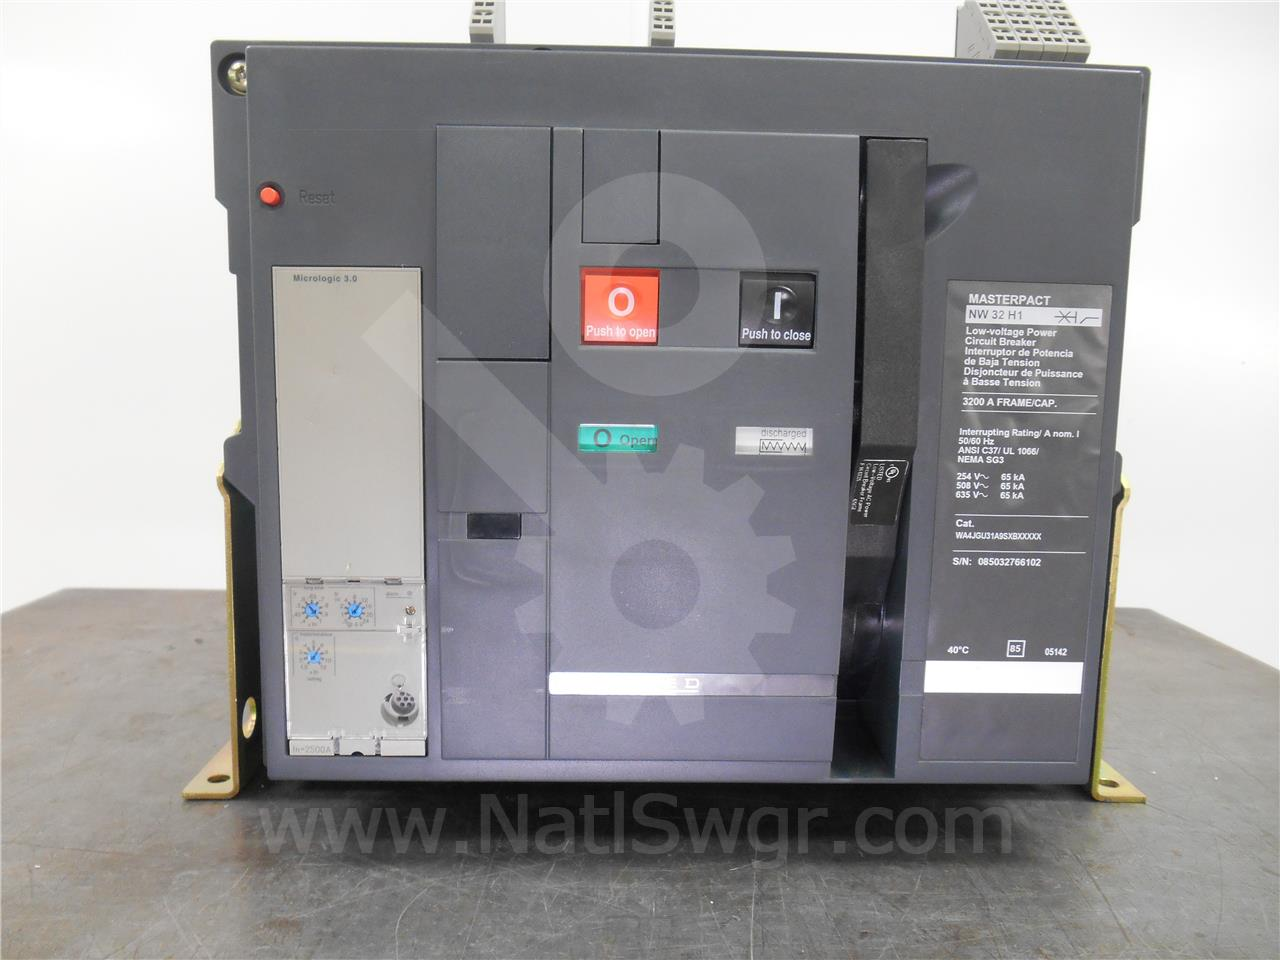 Square D 3200A SQD MASTERPACT NW32 H1 MO/BI WA4JGU31A9SXBXX ... on square d electrical panel schedule template, square d powerlogic, square d sef, square d powerpact, square d altivar, square d la, square d multi 9, square d 100 amp panel template,